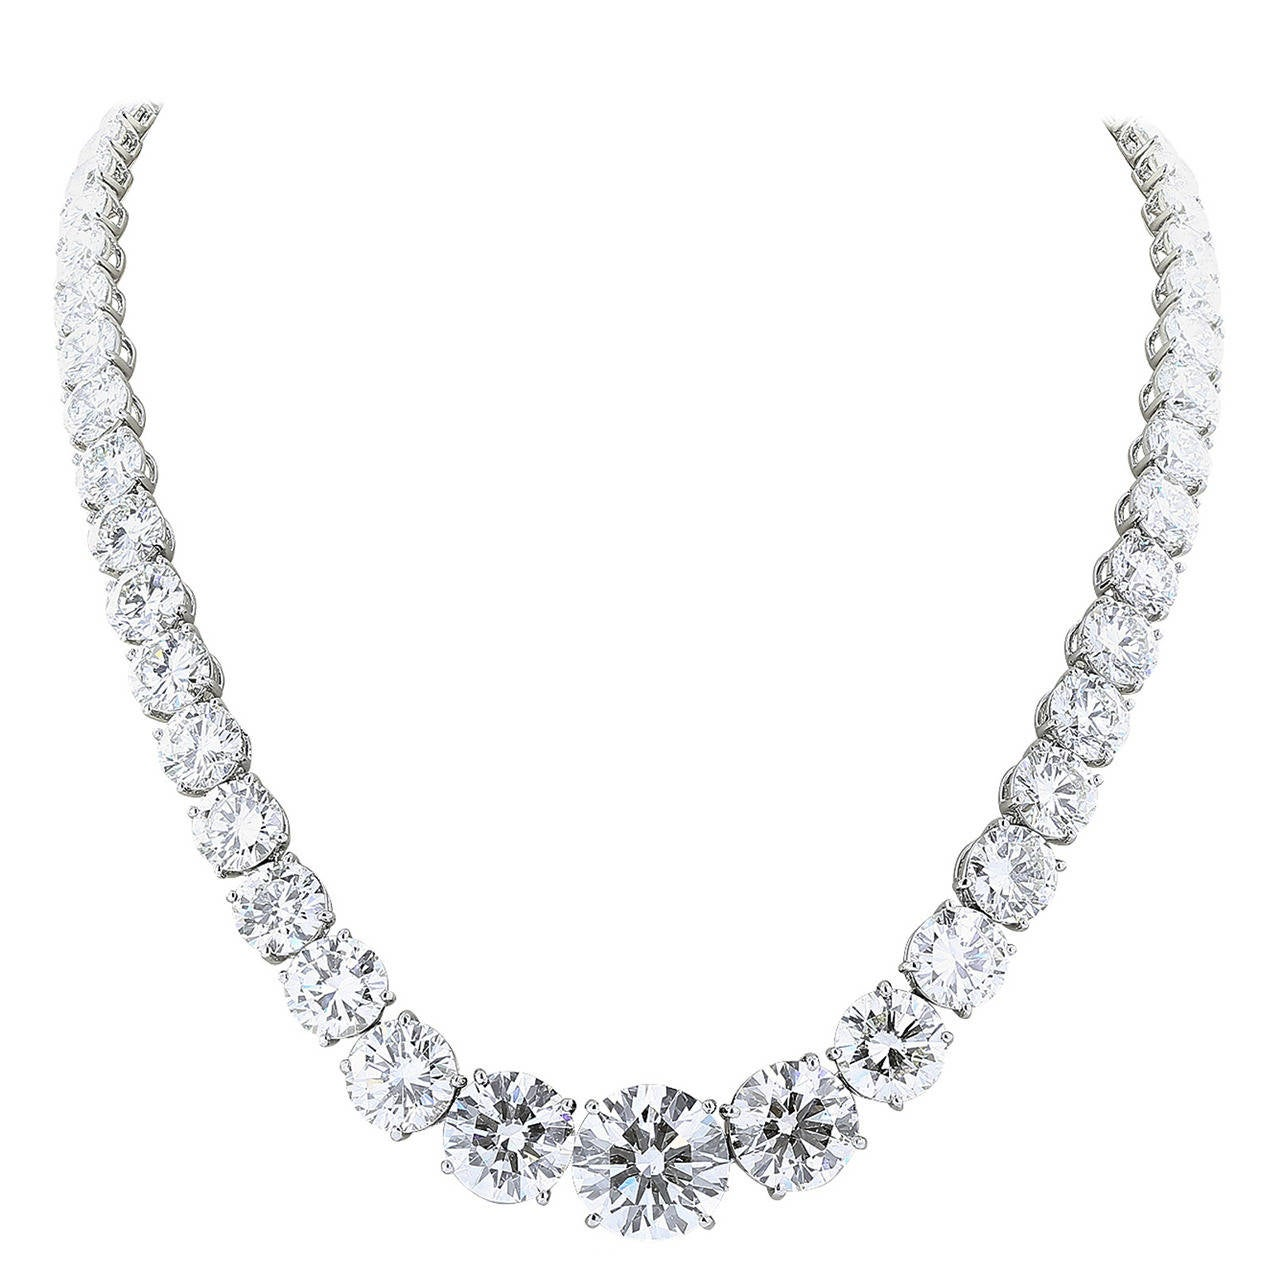 77.05 Carat Diamond Platinum Riviere Necklace